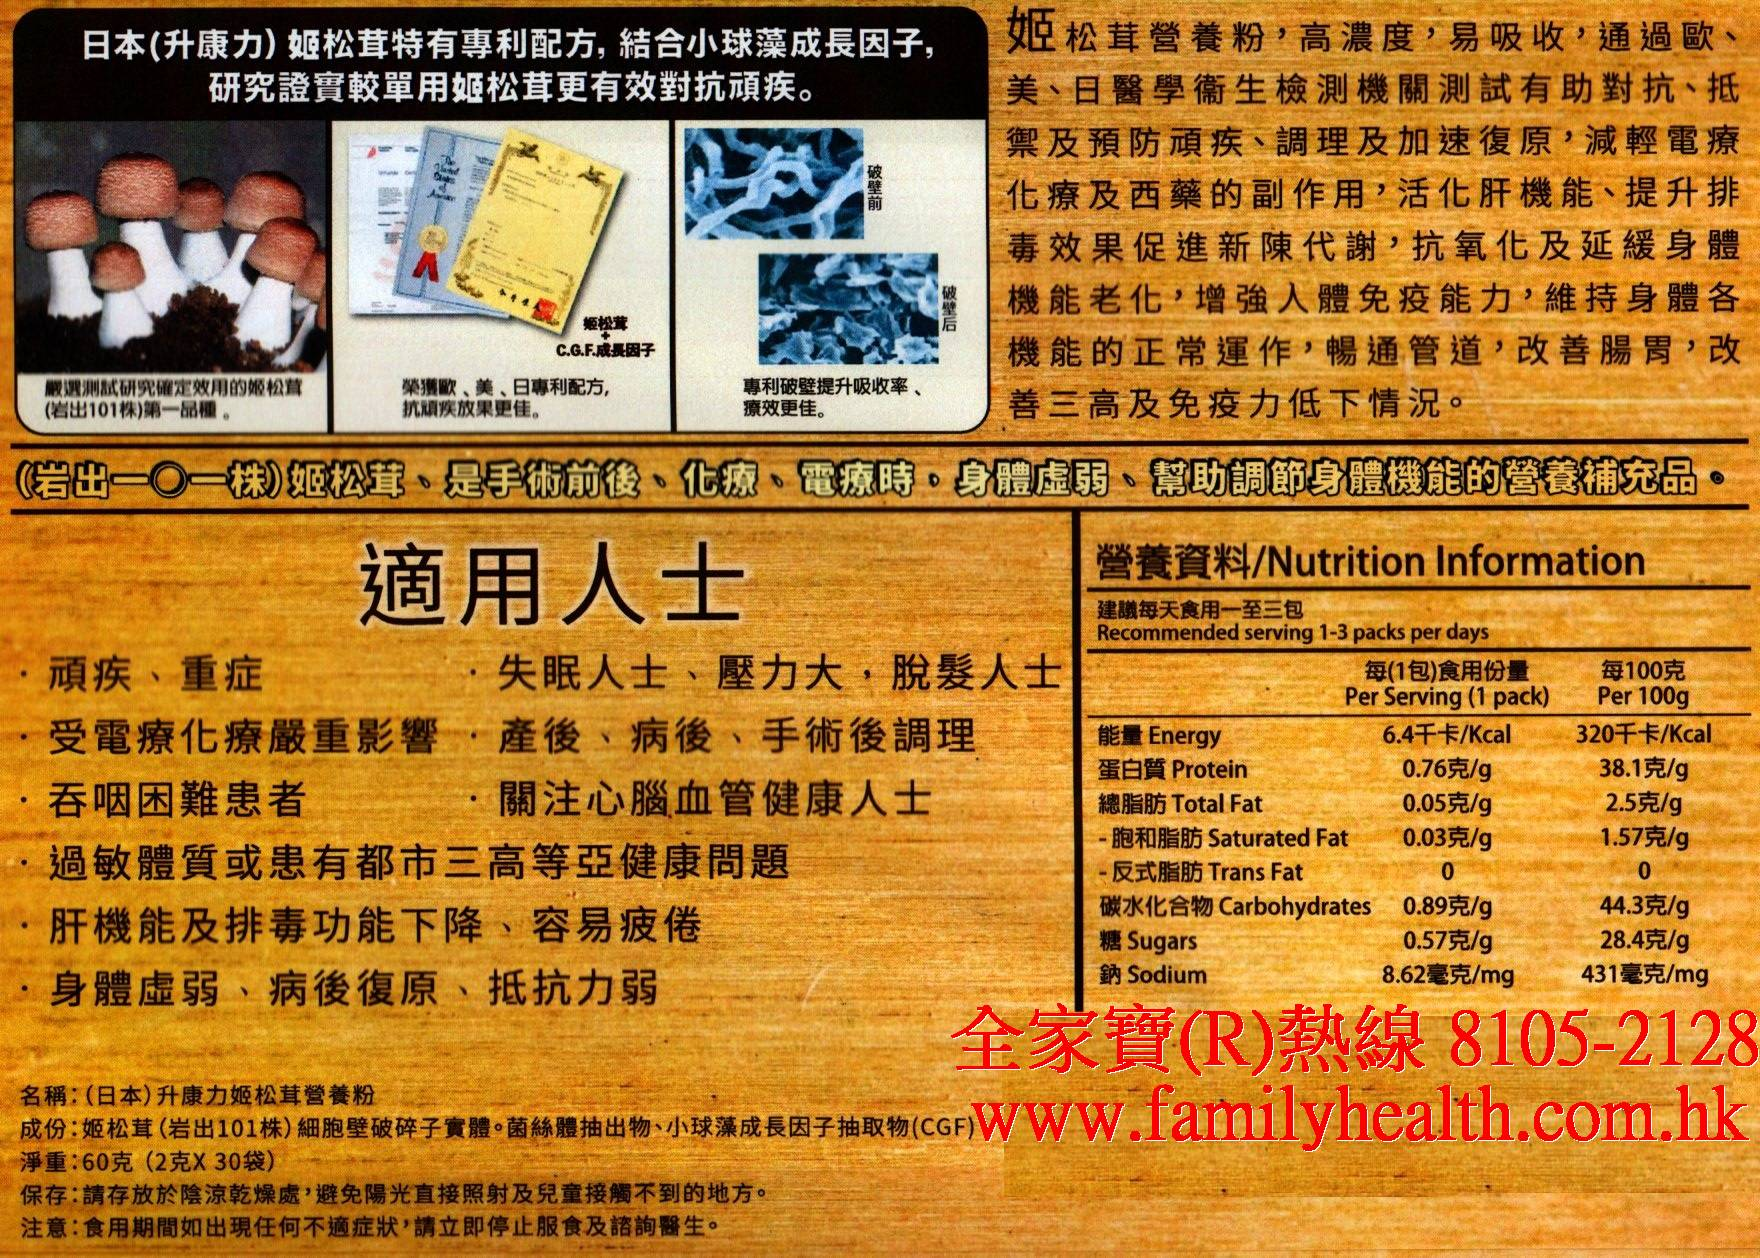 http://www.familyhealth.com.hk/files/full/1042_1.jpg